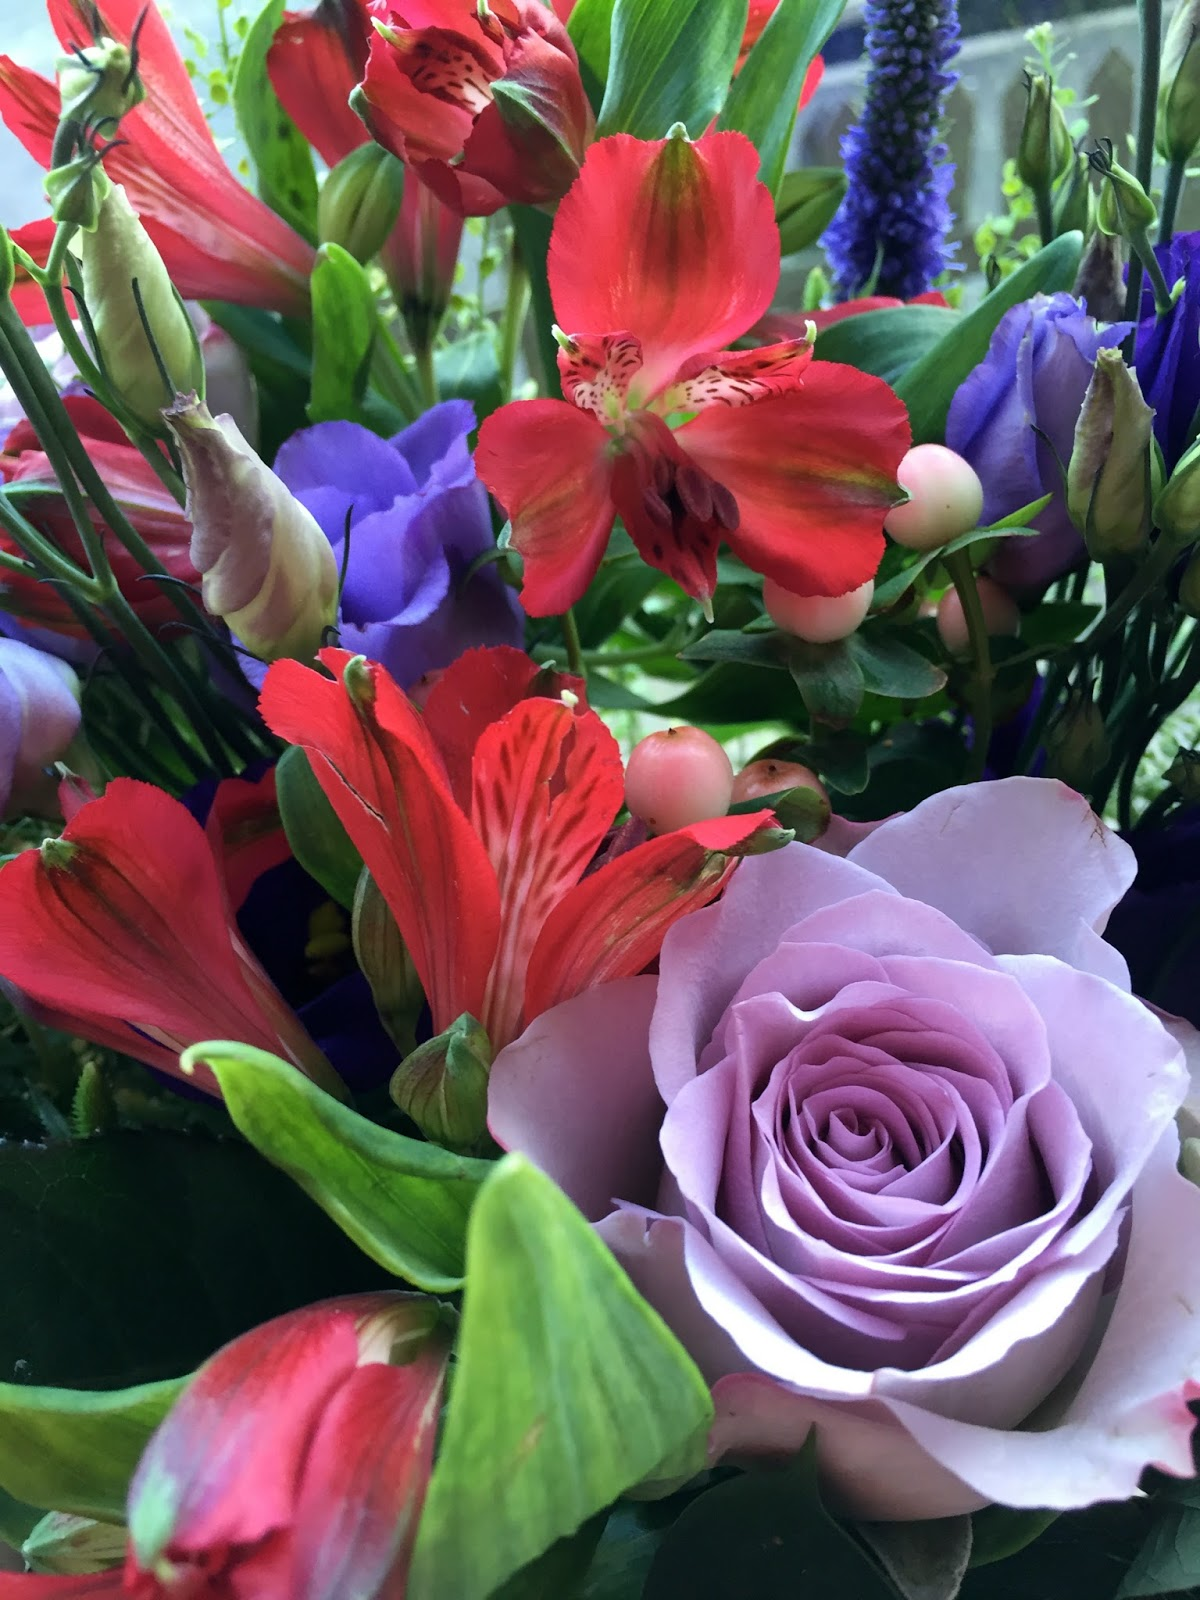 Flowers M And S Discount Code New Coupons